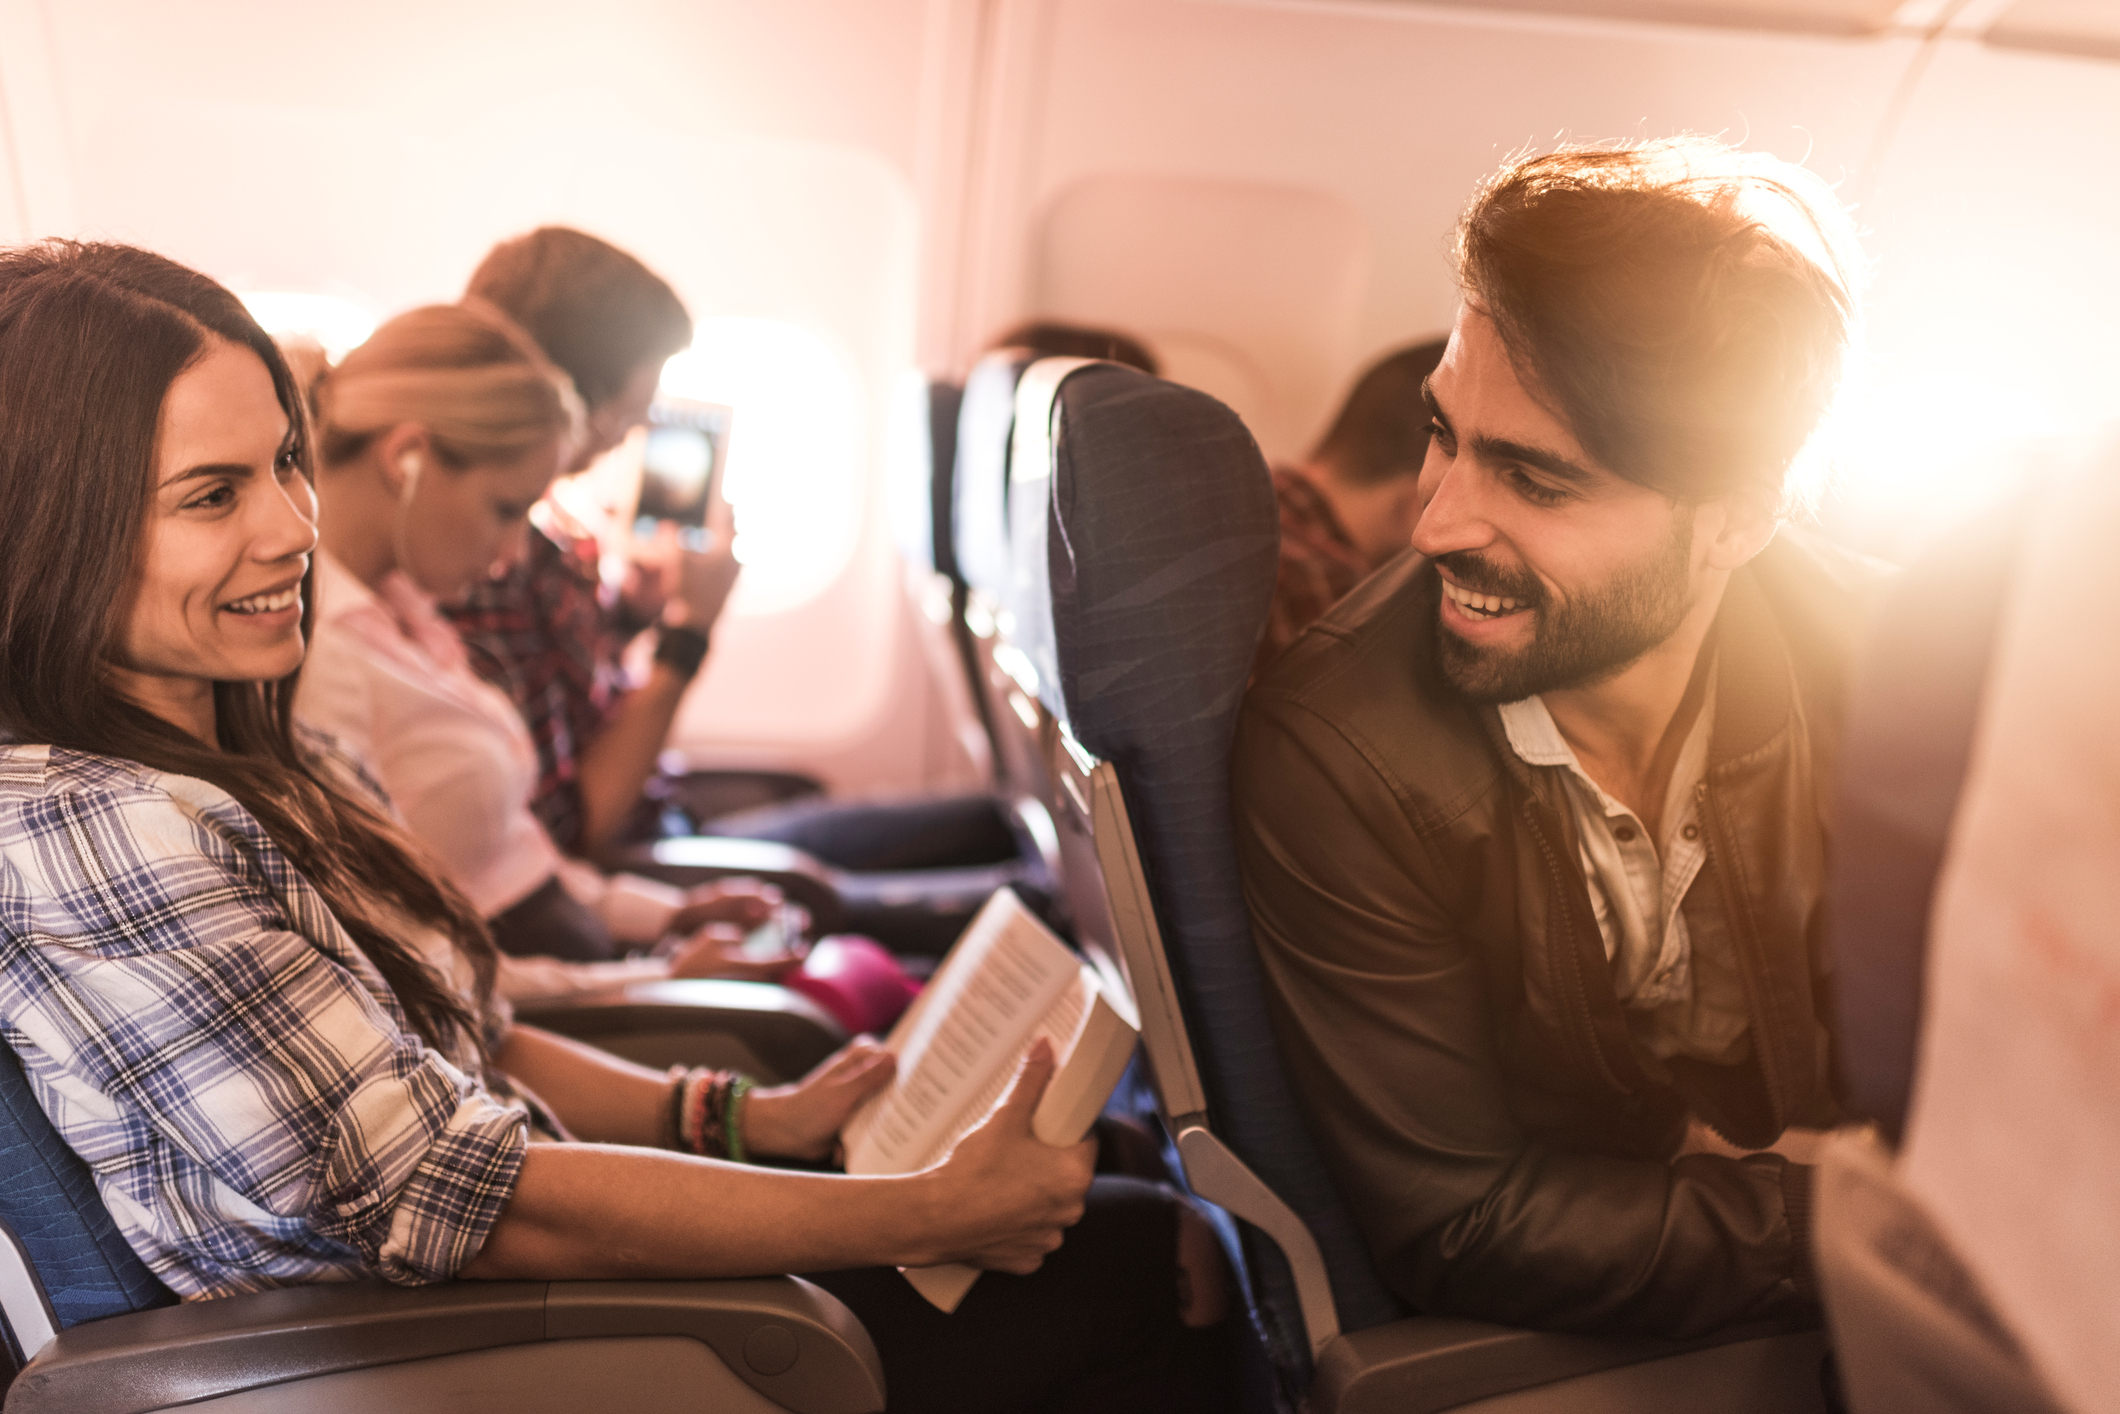 Happy passengers traveling by airplane and talking to each other. Focus is on man.